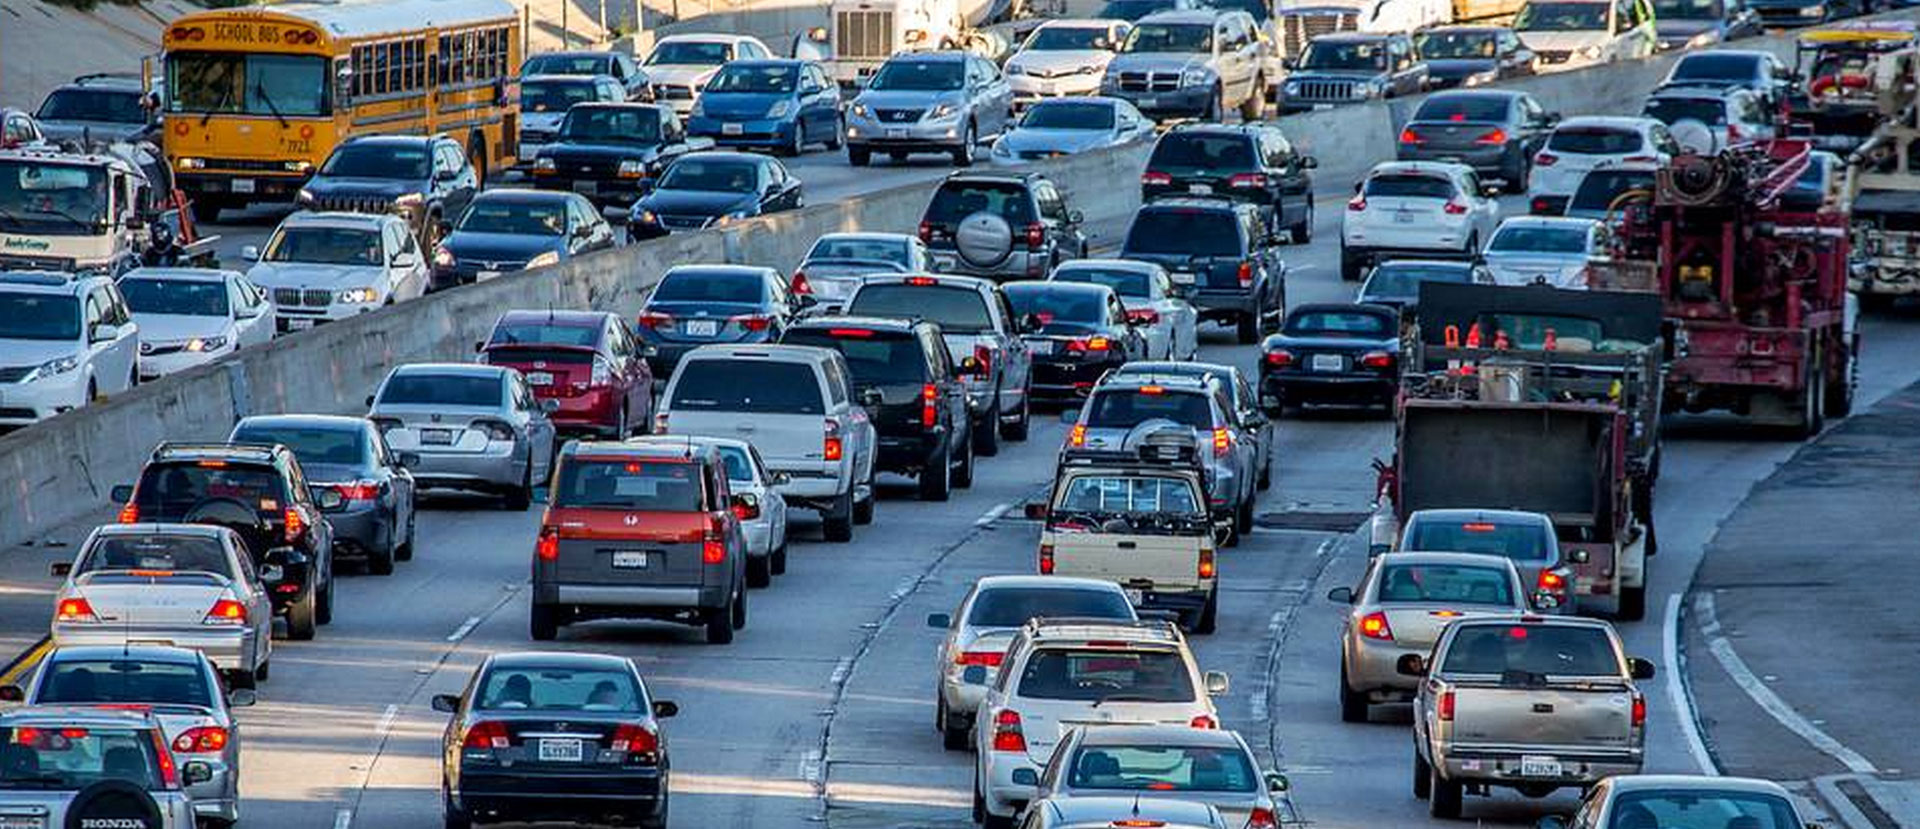 The traffic clogging California's roadways spews streams of greenhouse gases into the air.